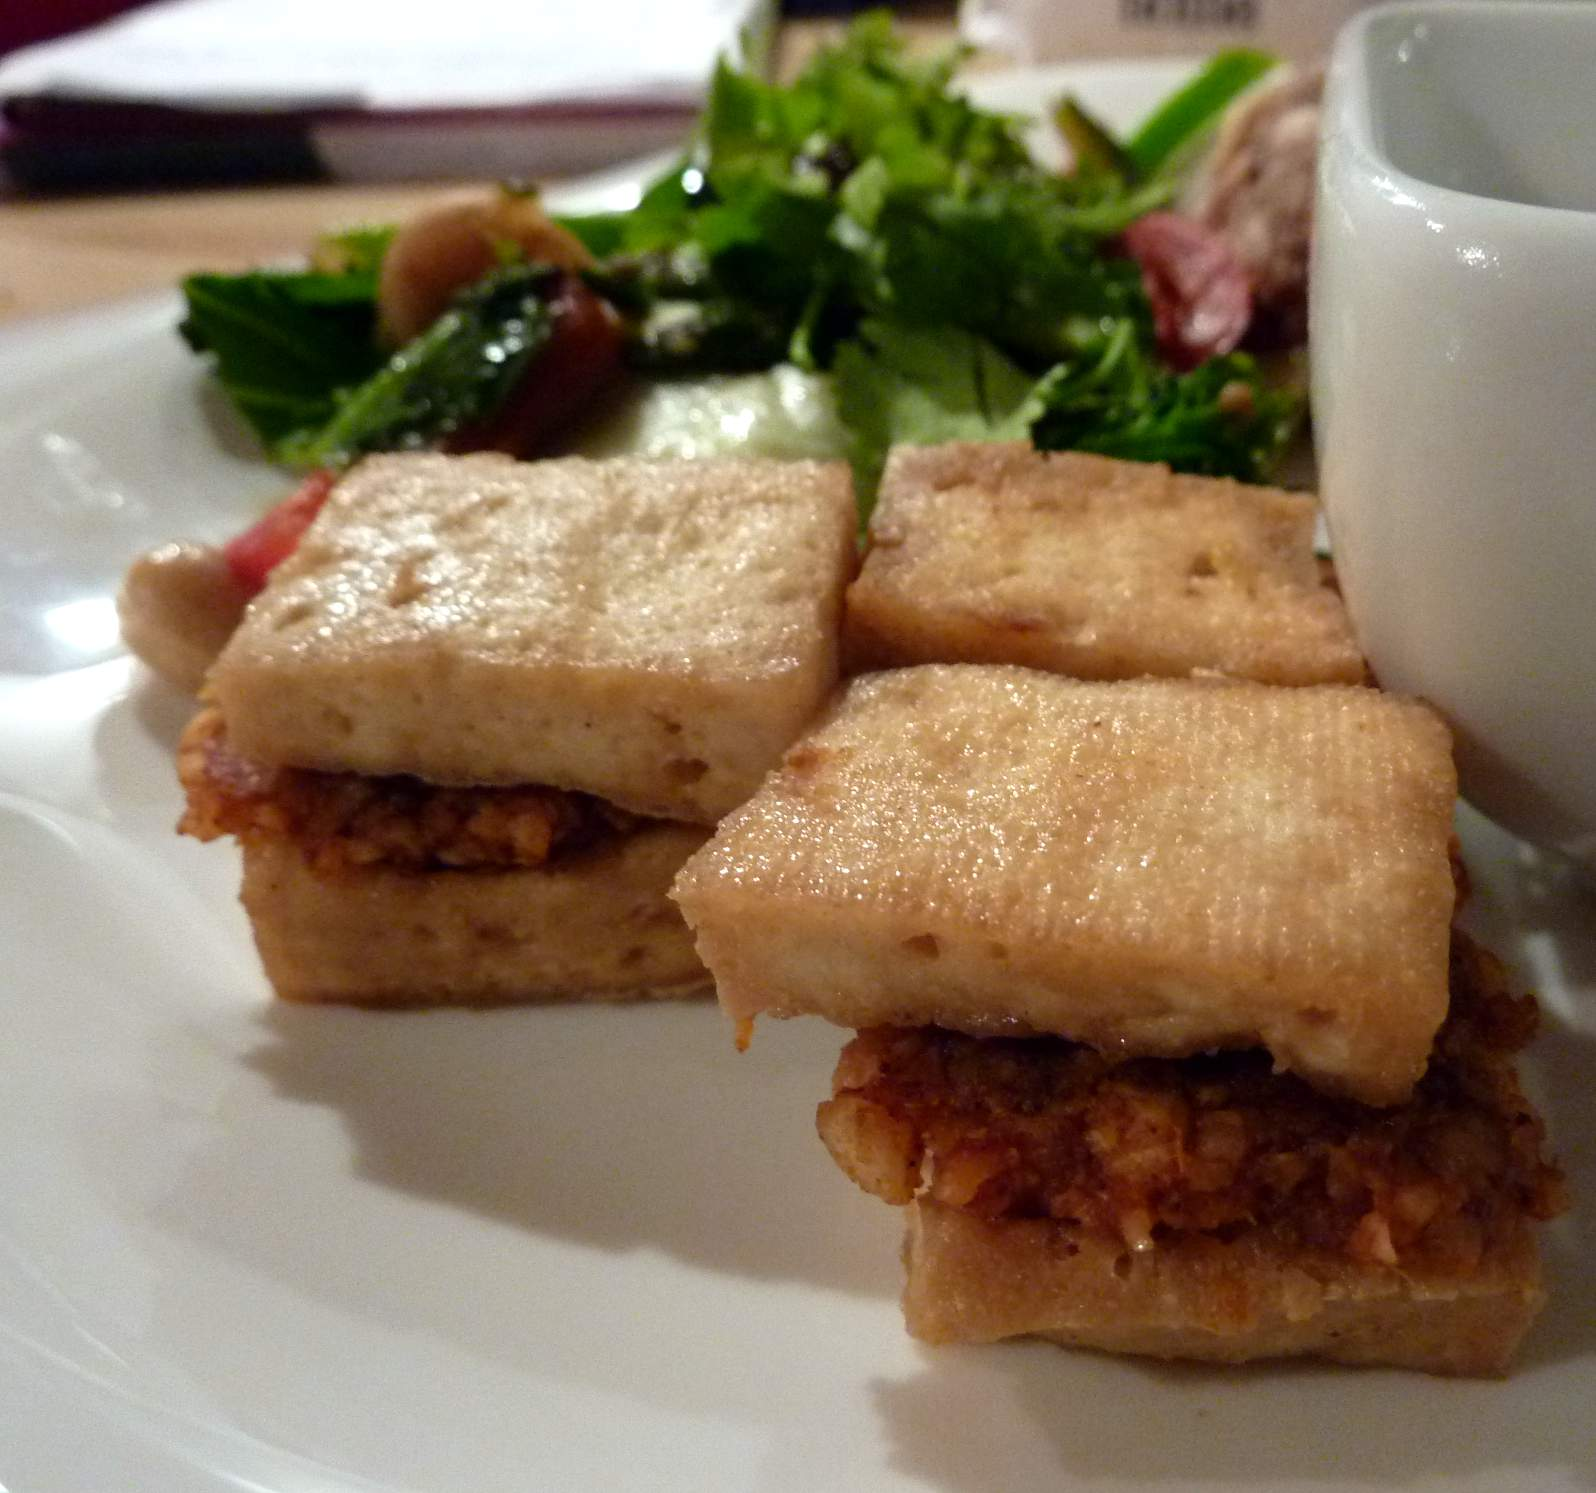 Tofu stuffed with Cashew, Ginger and 5 spice